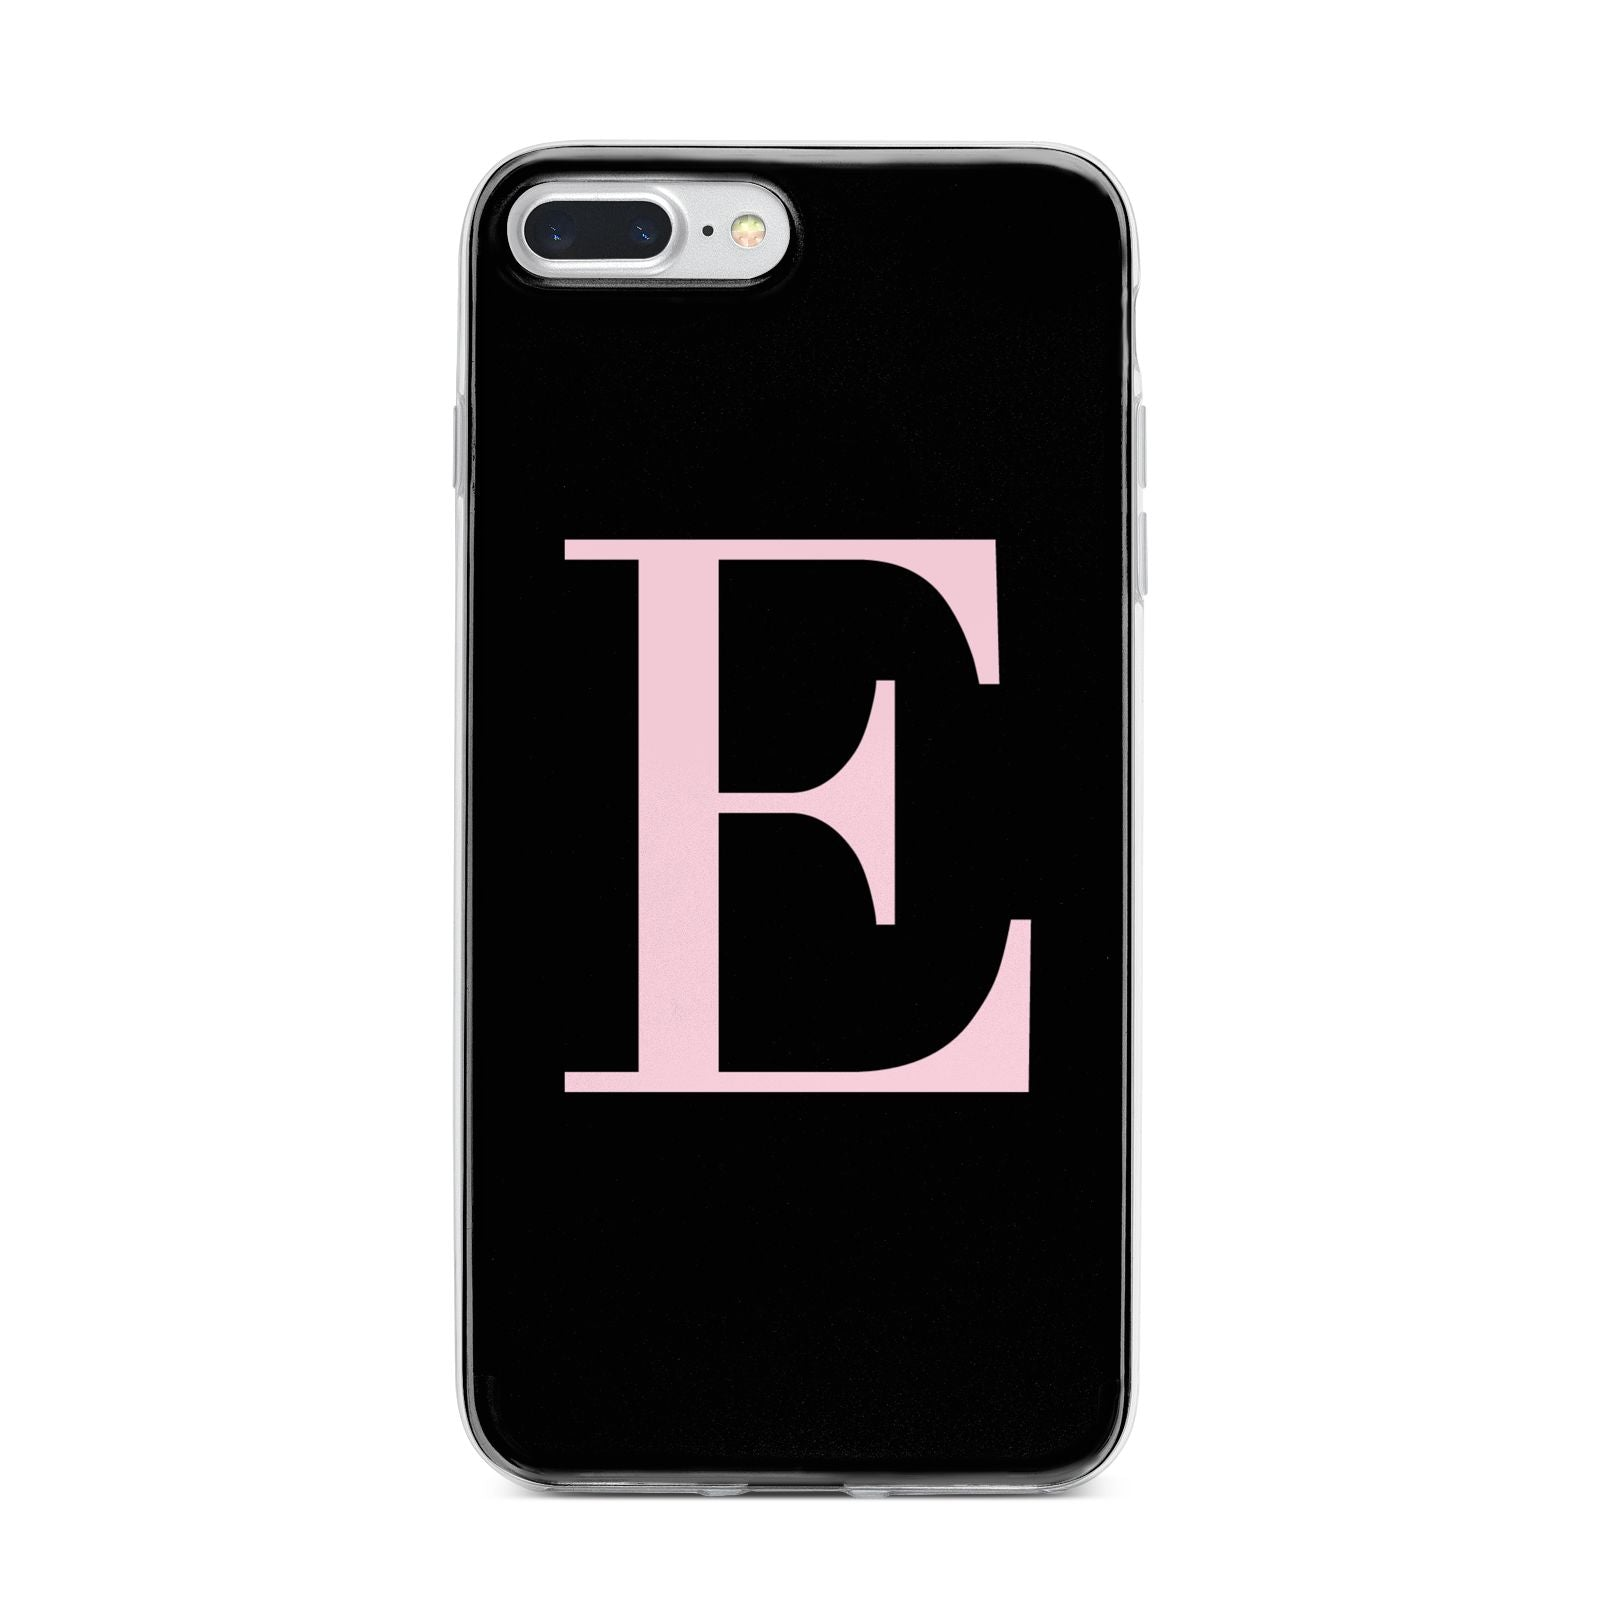 Black with Pink Personalised Monogram iPhone 7 Plus Bumper Case on Silver iPhone